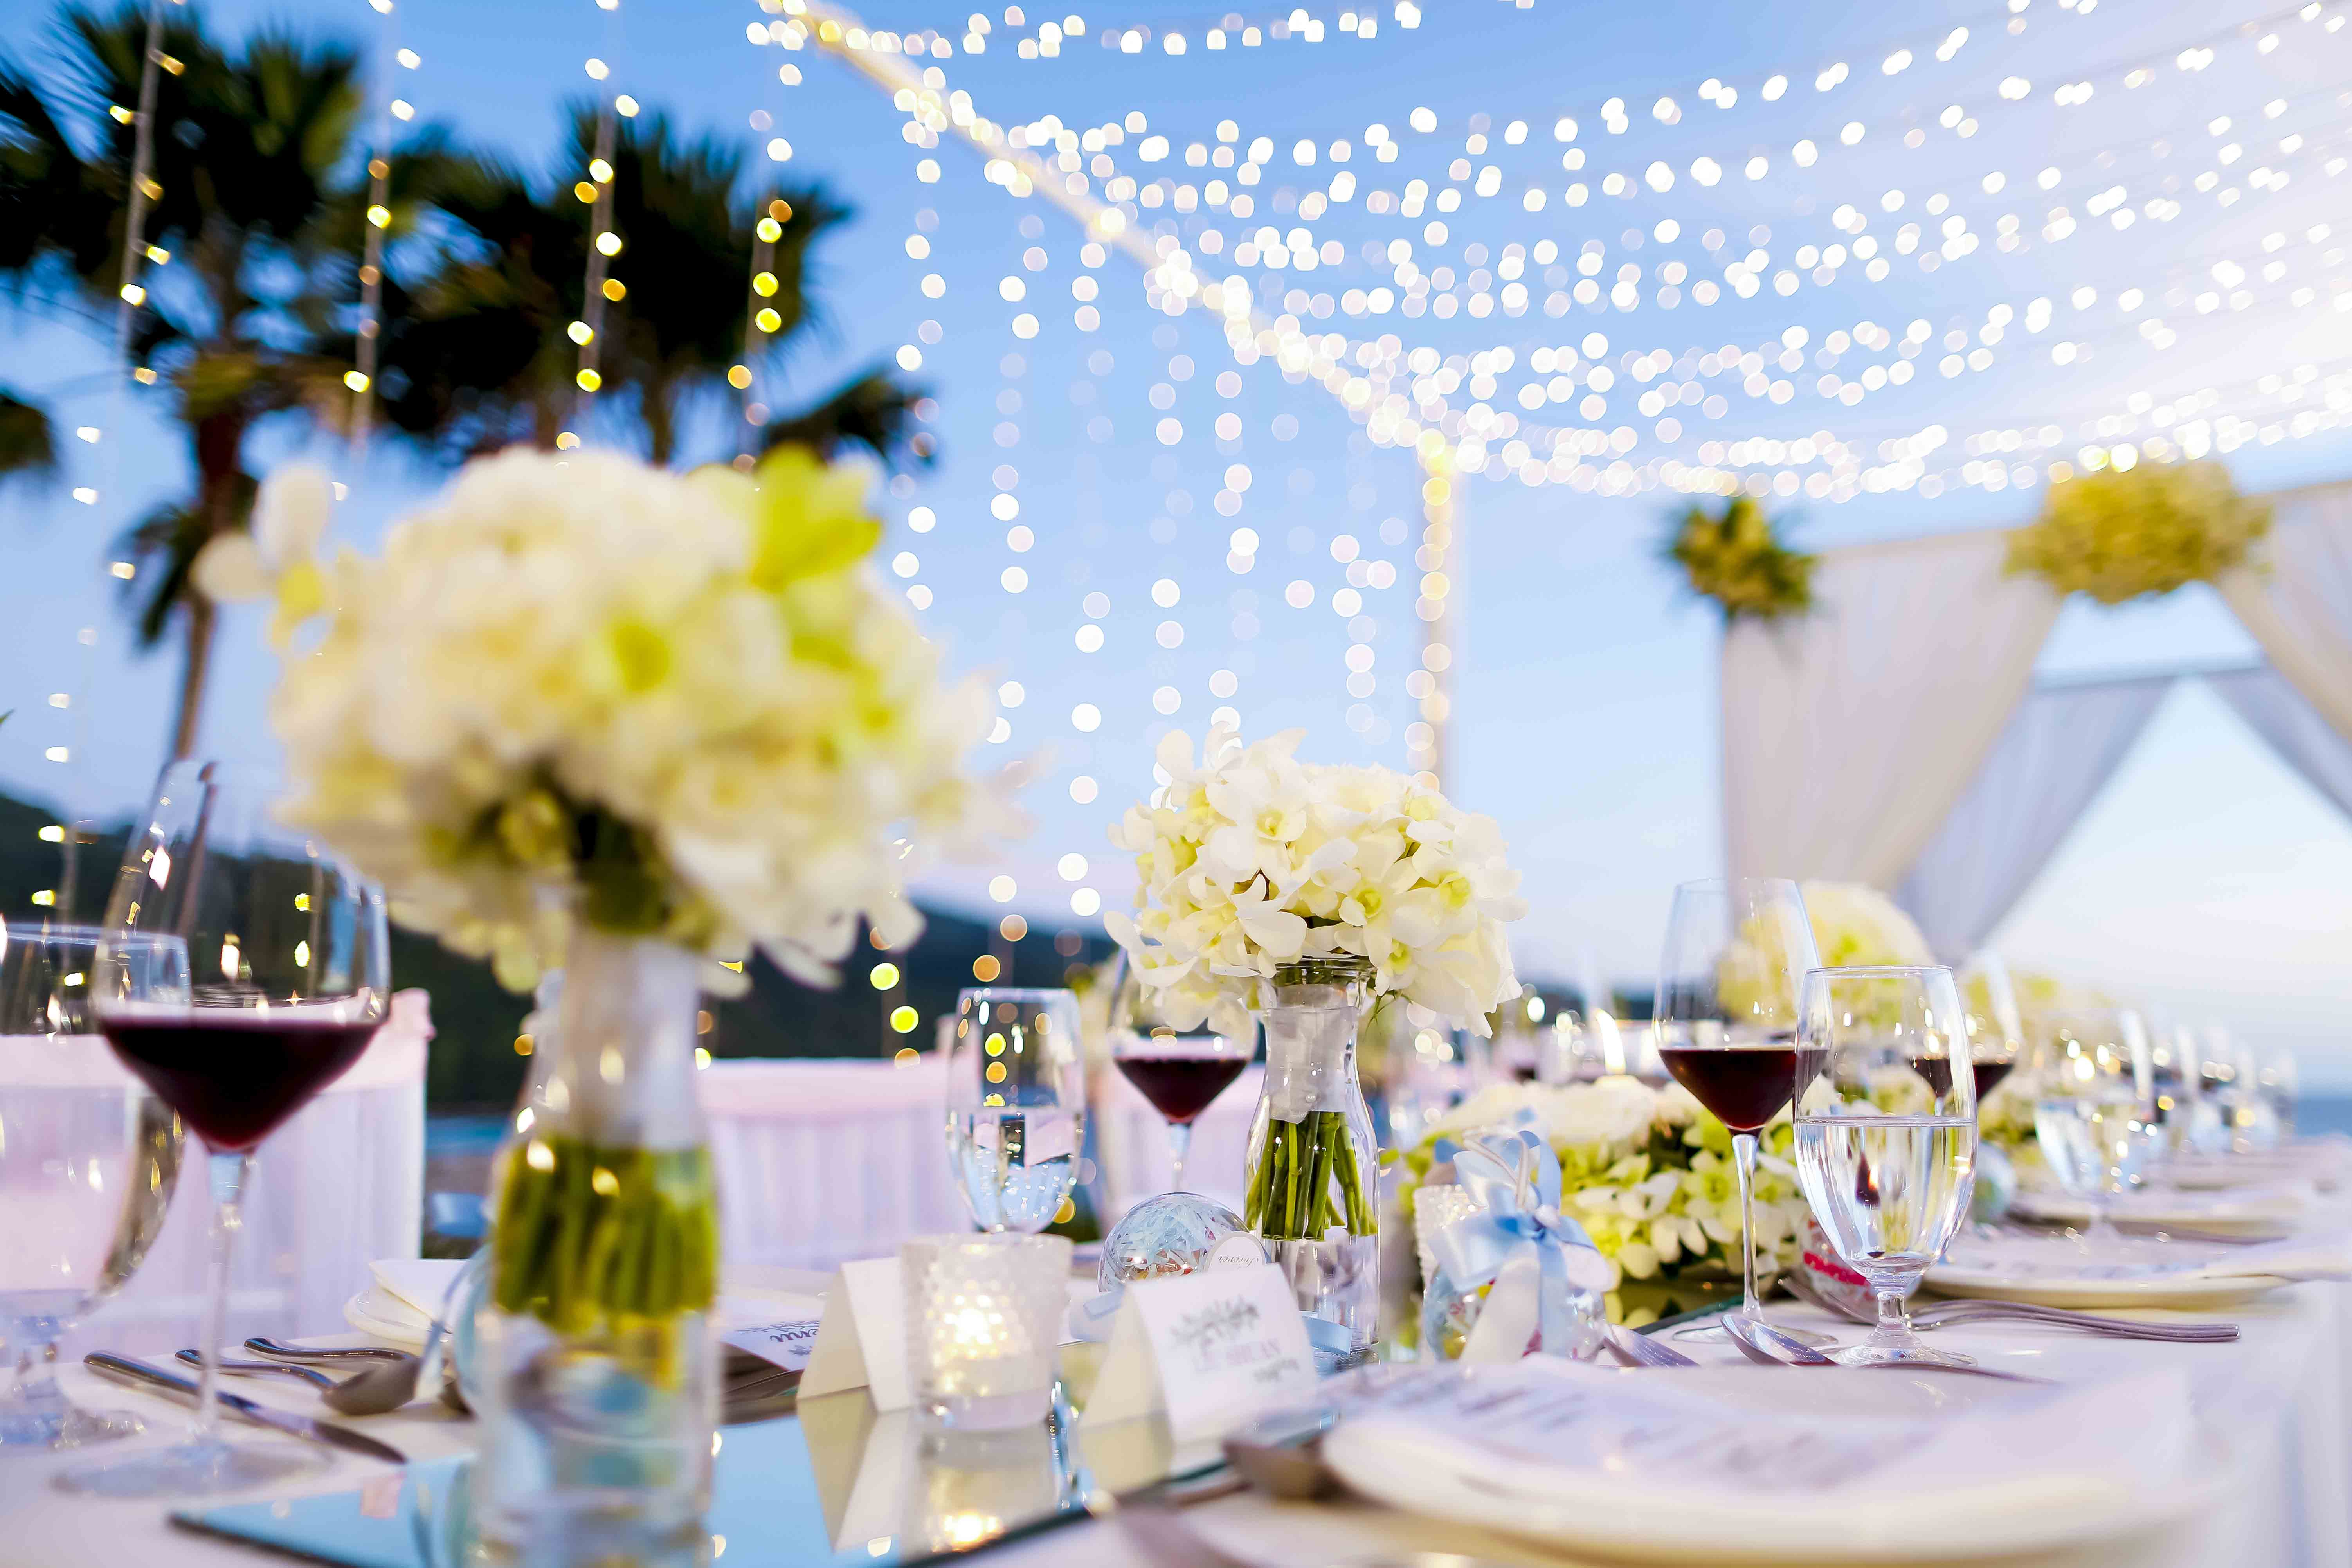 The best wedding caterer on the Costa Blanca